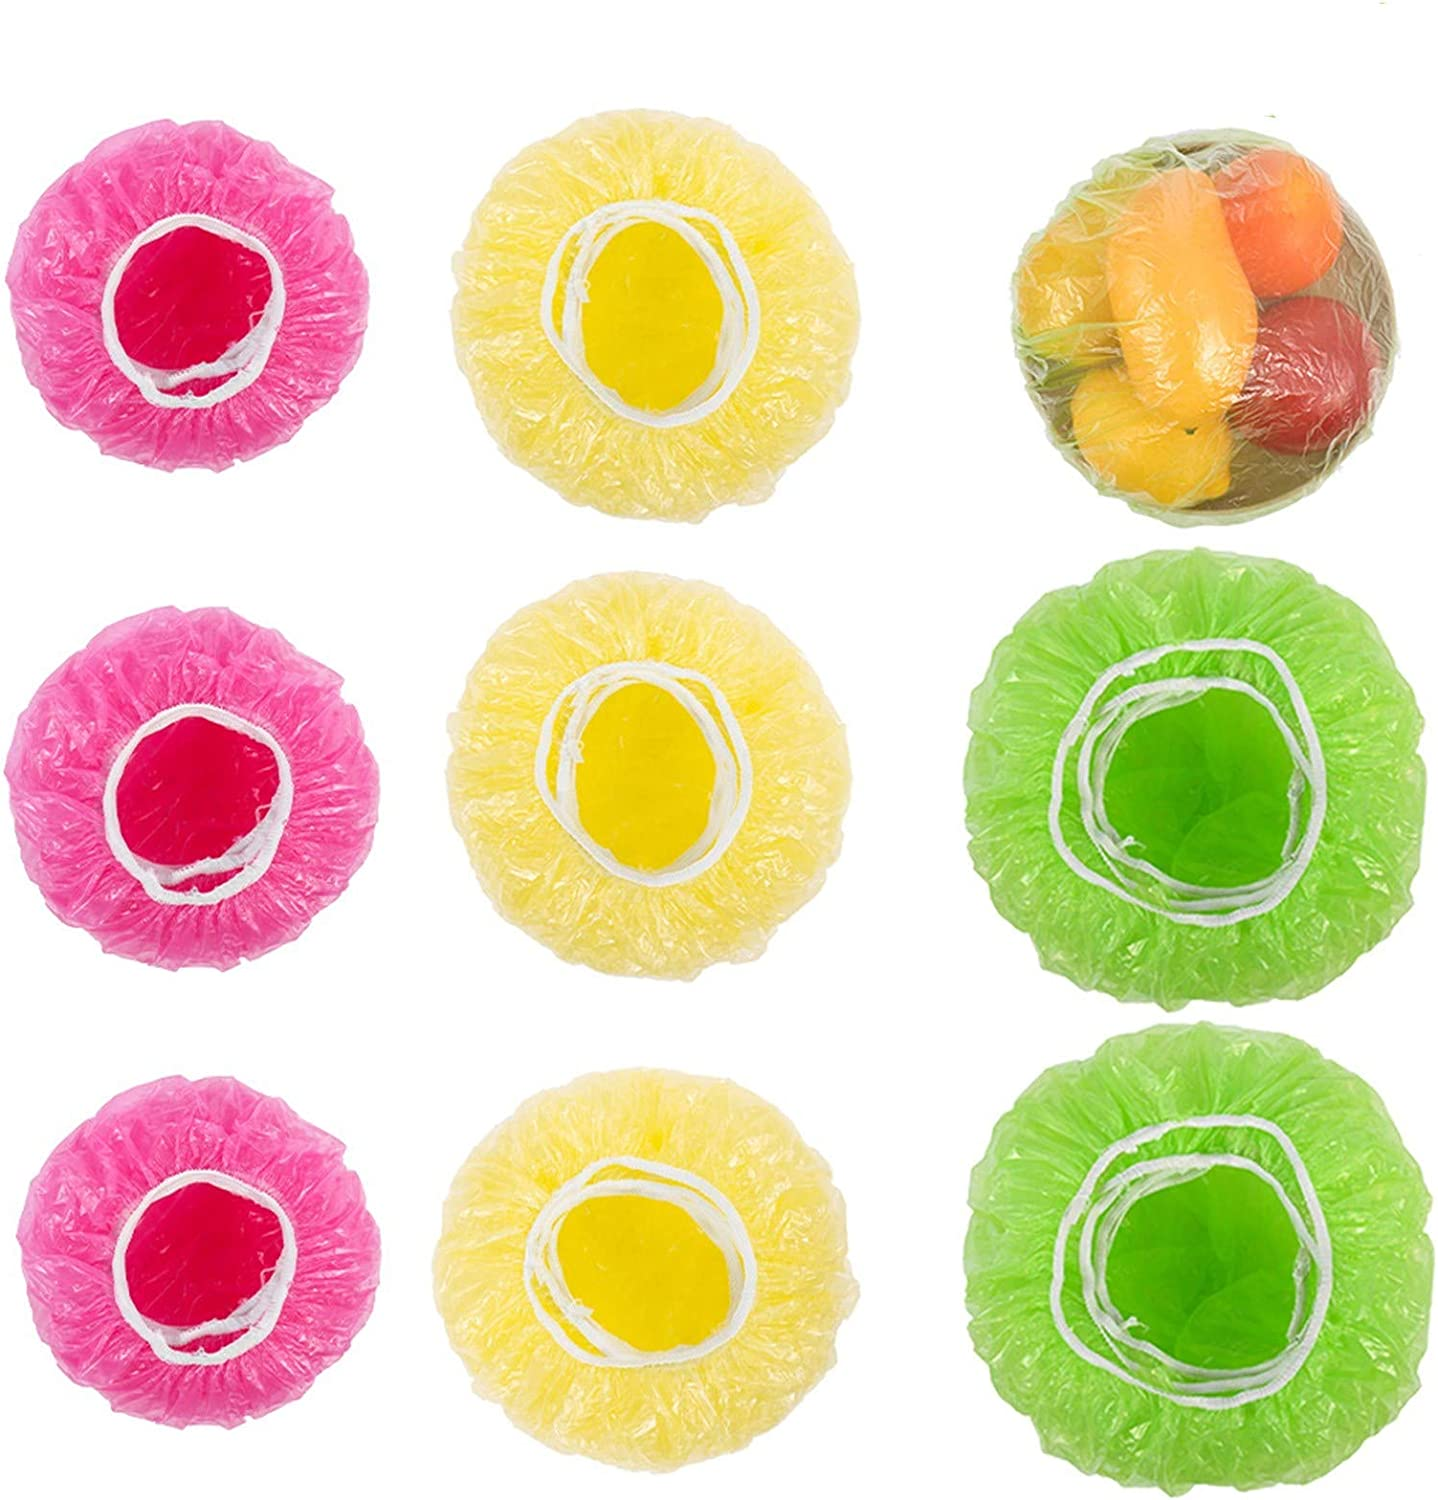 KINAKE 90 PCS Elastic Food Storage Covers Reusable Colorful Bowl Covers Dish Plate Plastic Covers for Family Outdoor Picnic